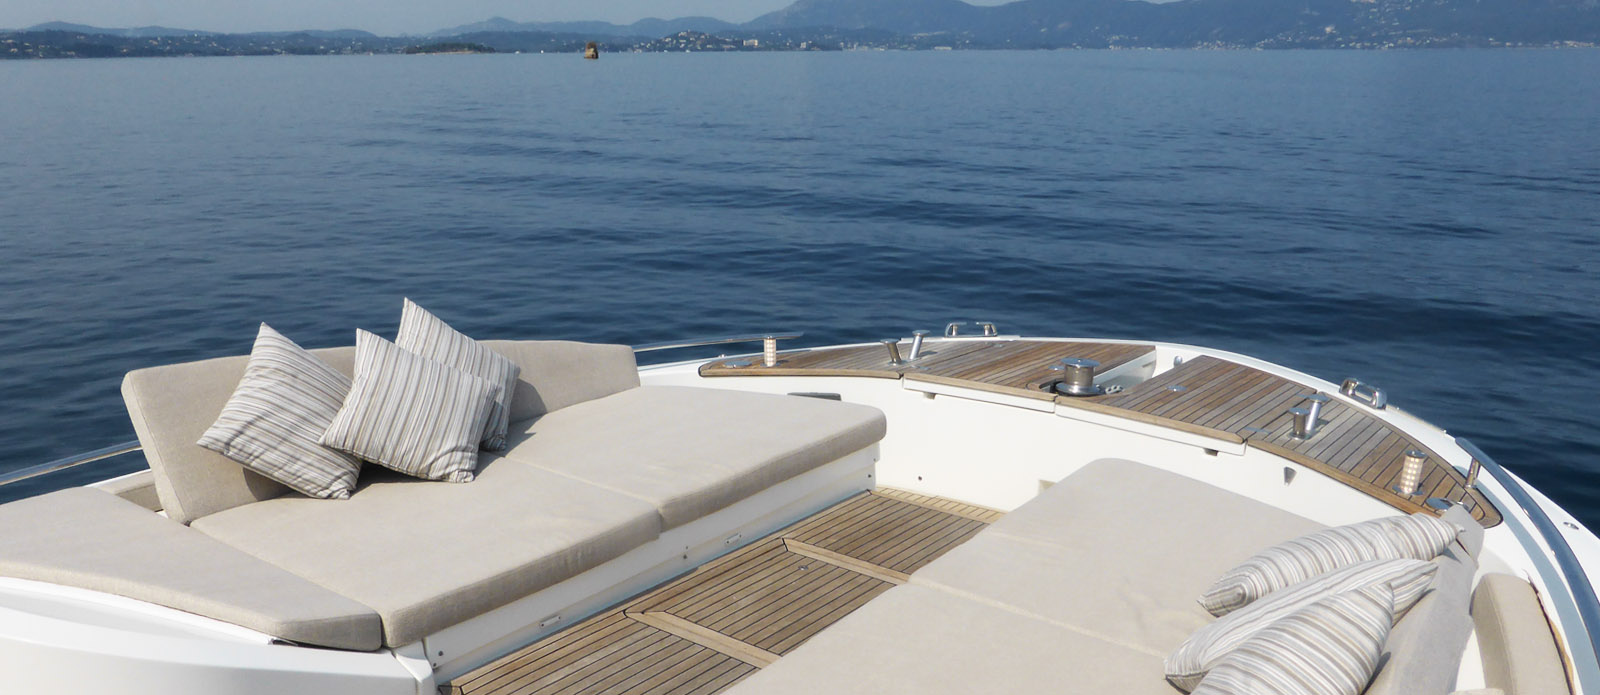 Monte-Carlo-Yachts-65-It's-Magic-Sunbathing